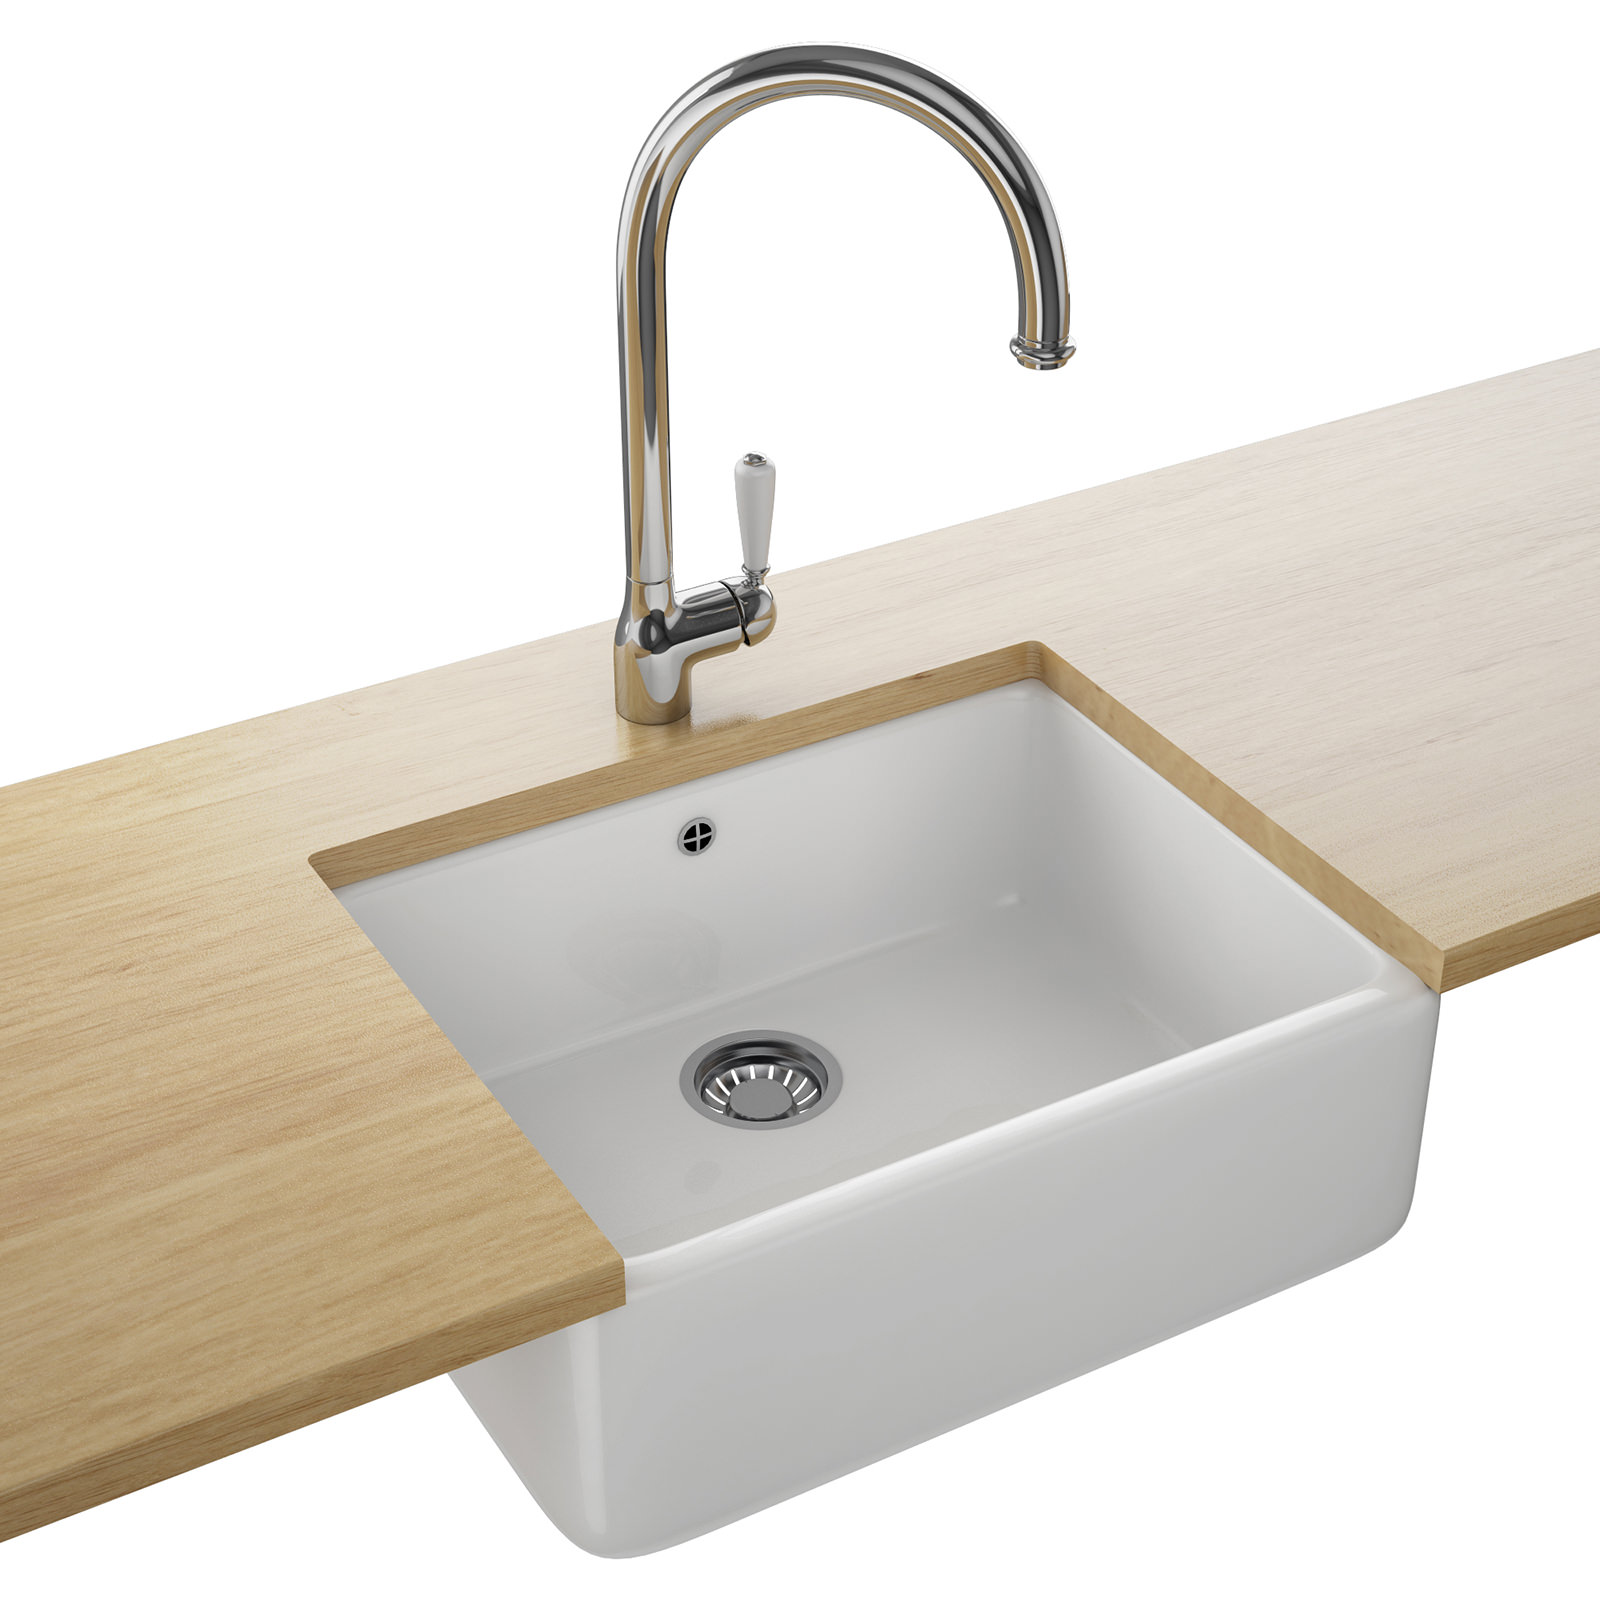 Franke Kitchen Sinks : Franke Belfast Designer Pack VBK 710 Ceramic White Kitchen Sink And ...